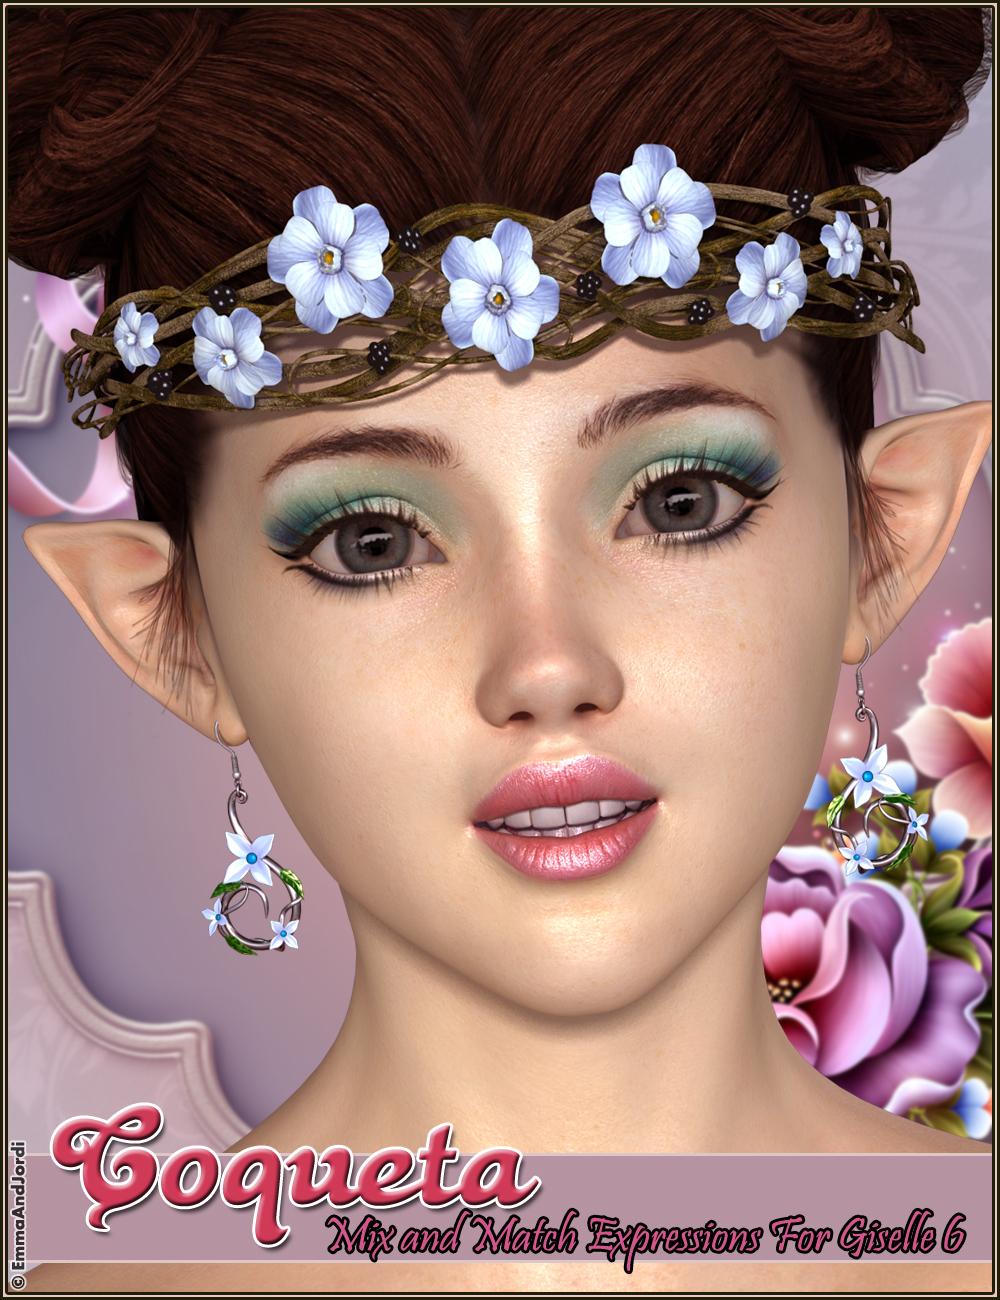 Coqueta Mix And Match Expressions For Giselle 6 by: EmmaAndJordi, 3D Models by Daz 3D